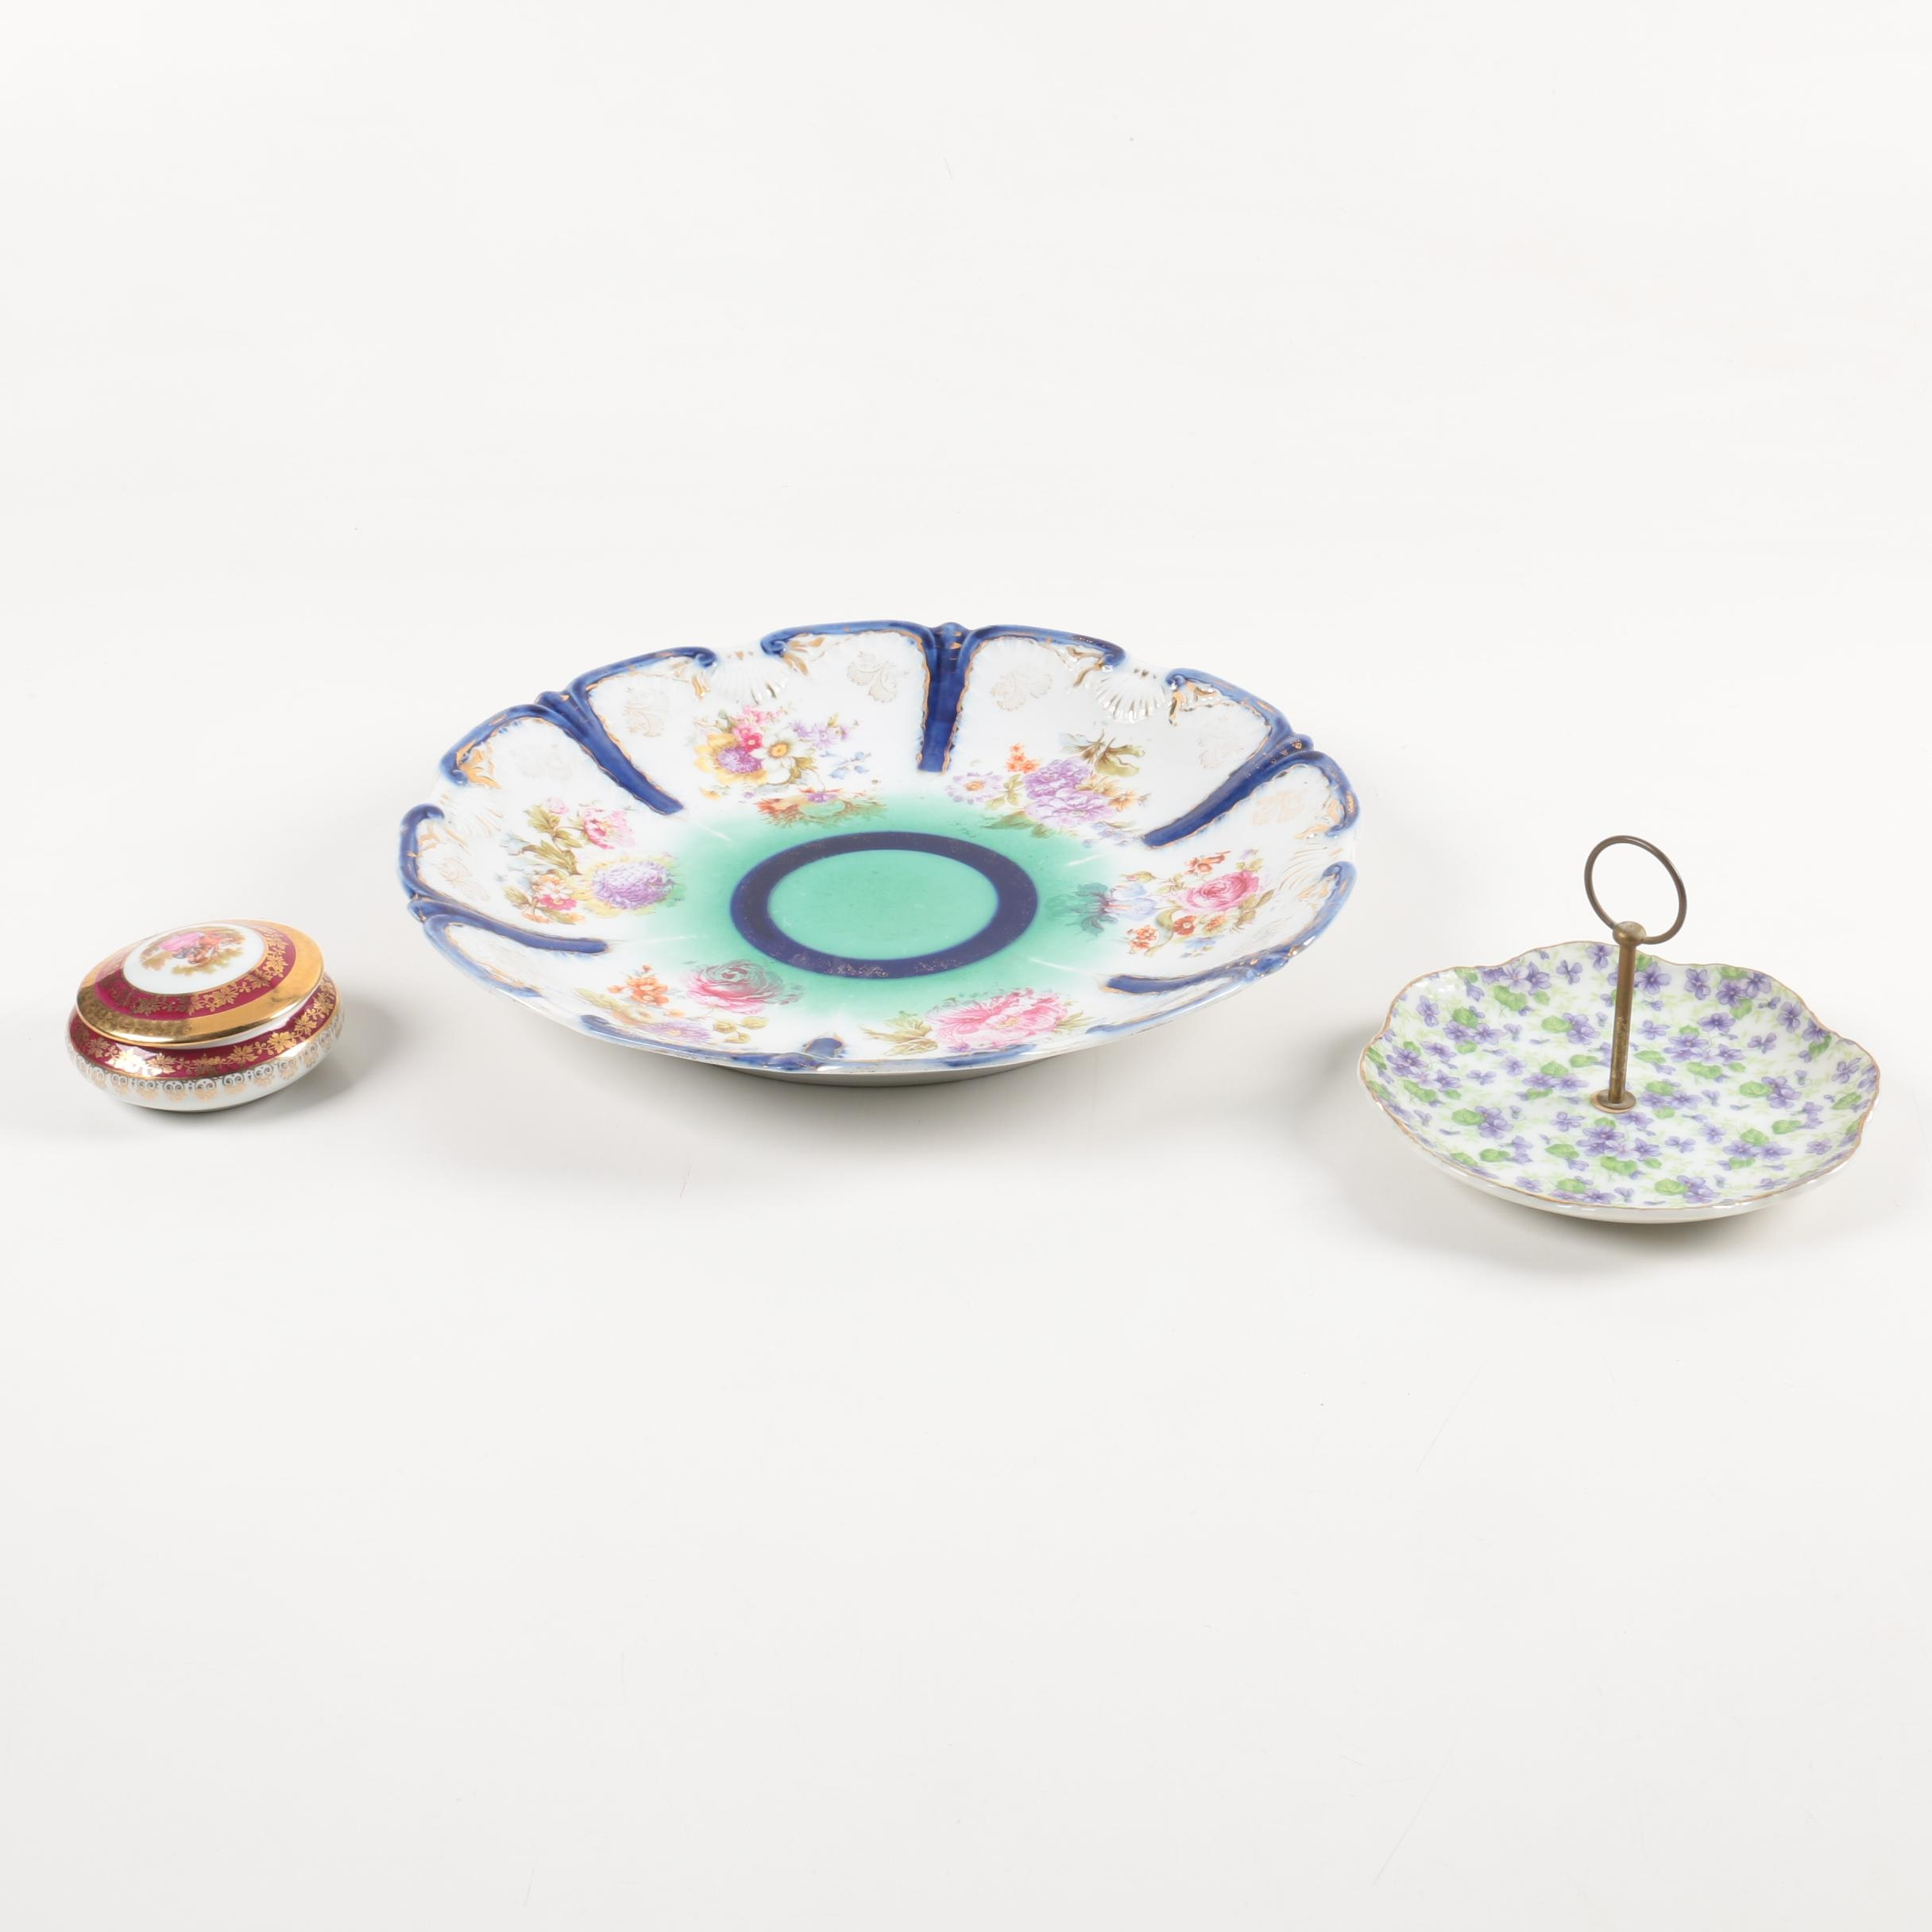 Porcelain Tableware Featuring Lefton China